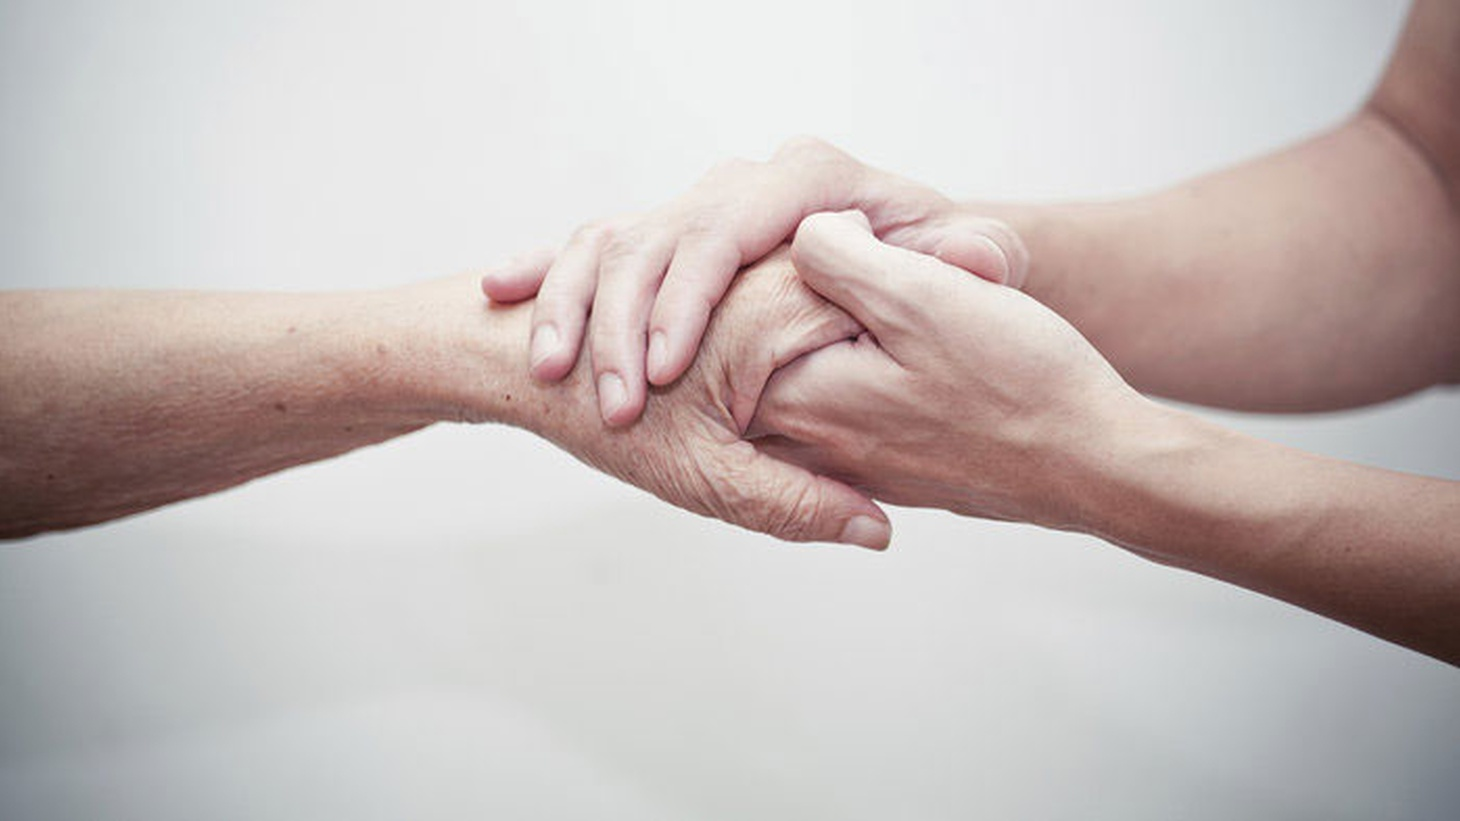 Compassion is a universal virtue, but is it innate or taught? Have we lost touch with it? Can we be better at it? TED speakers explore compassion, its roots, its meaning and its future. (Repeat)